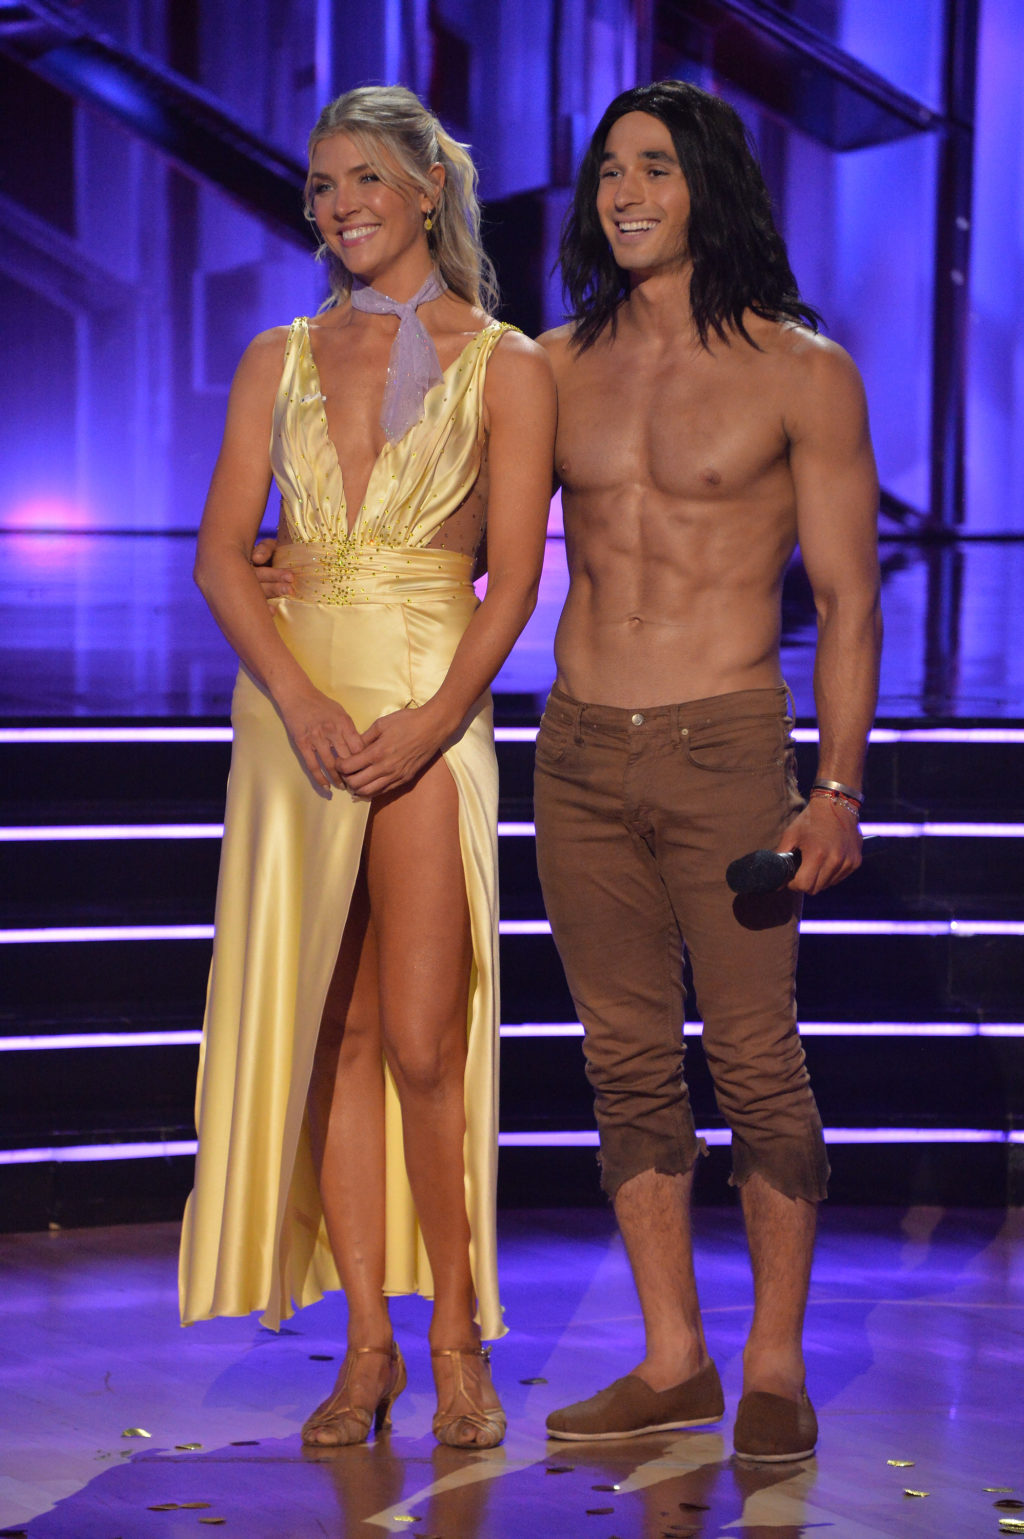 Dancing With The Stars 30 Recap For Disney Heroes Night